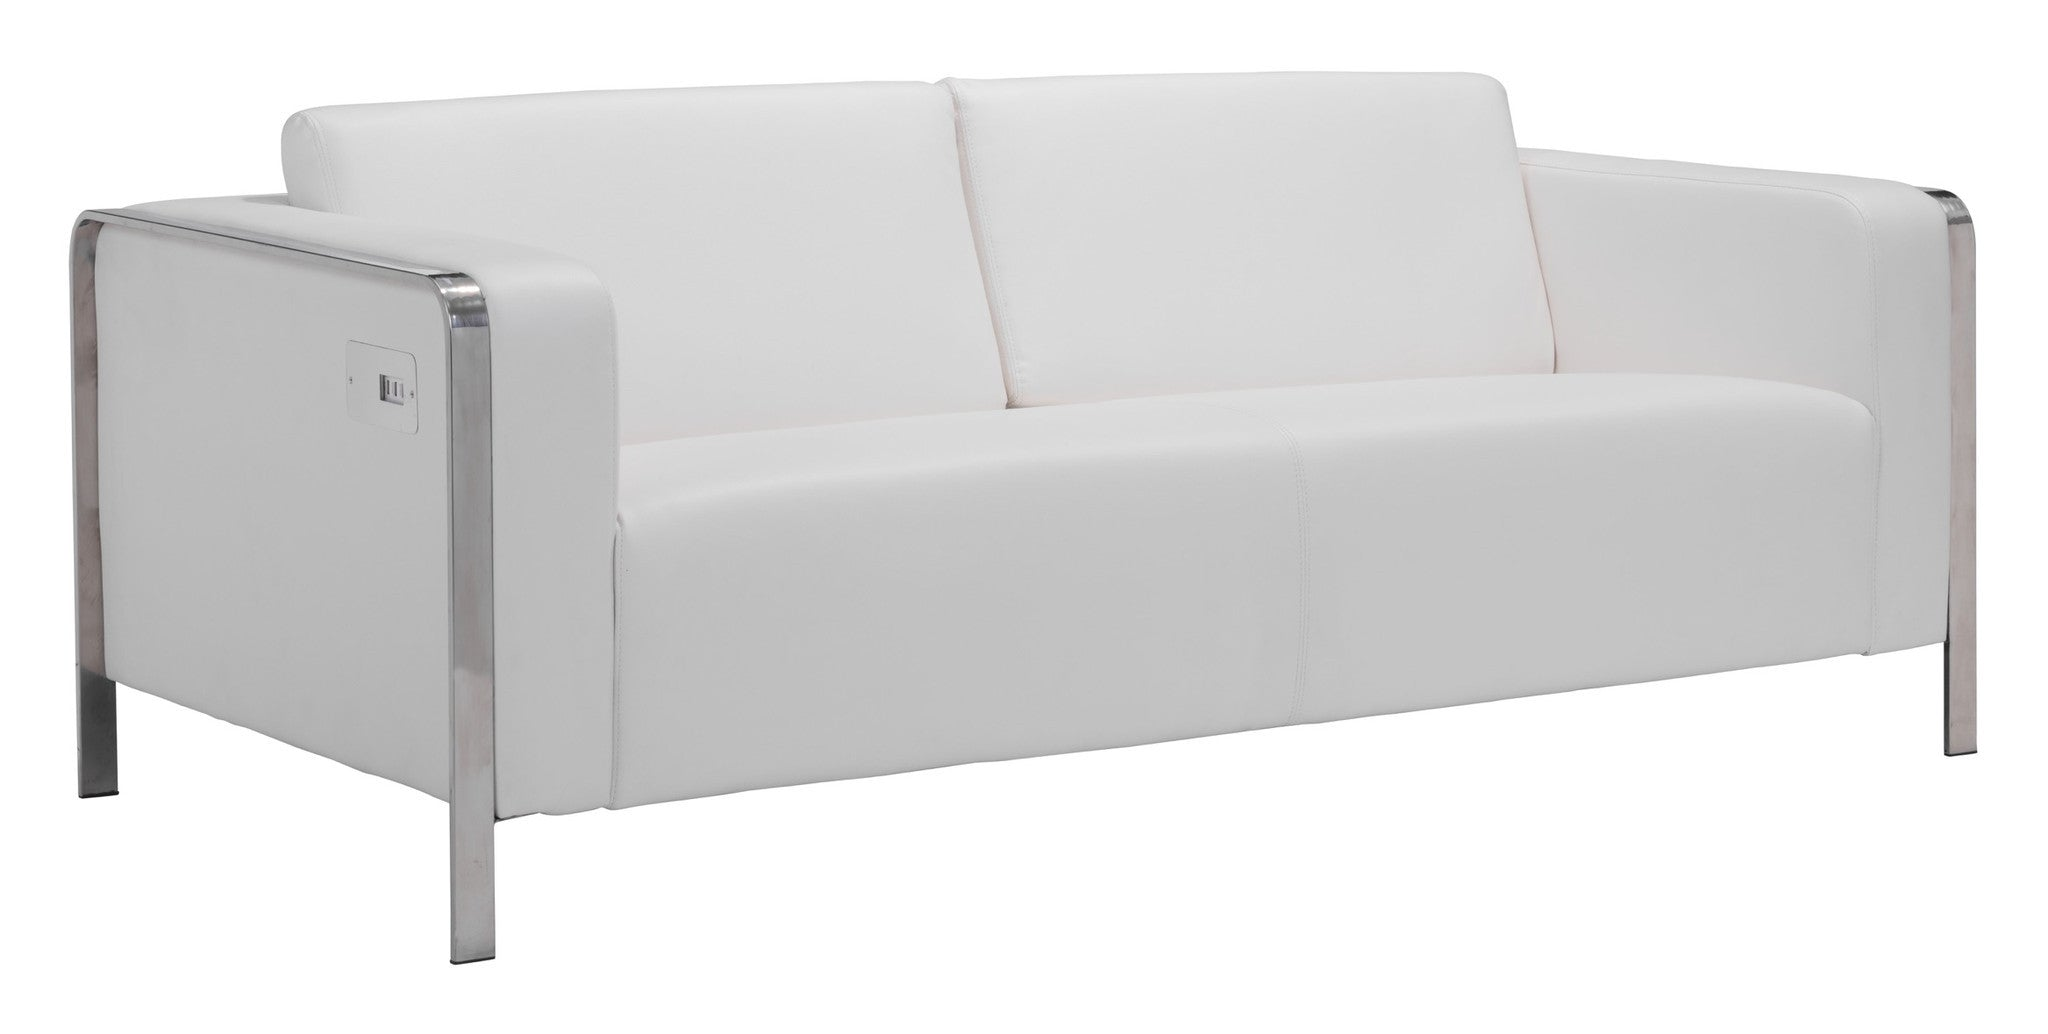 loveseat color plush alan condition set and clean comfortable couch glass office really off coffee table very cream or mint negotiate white furniture